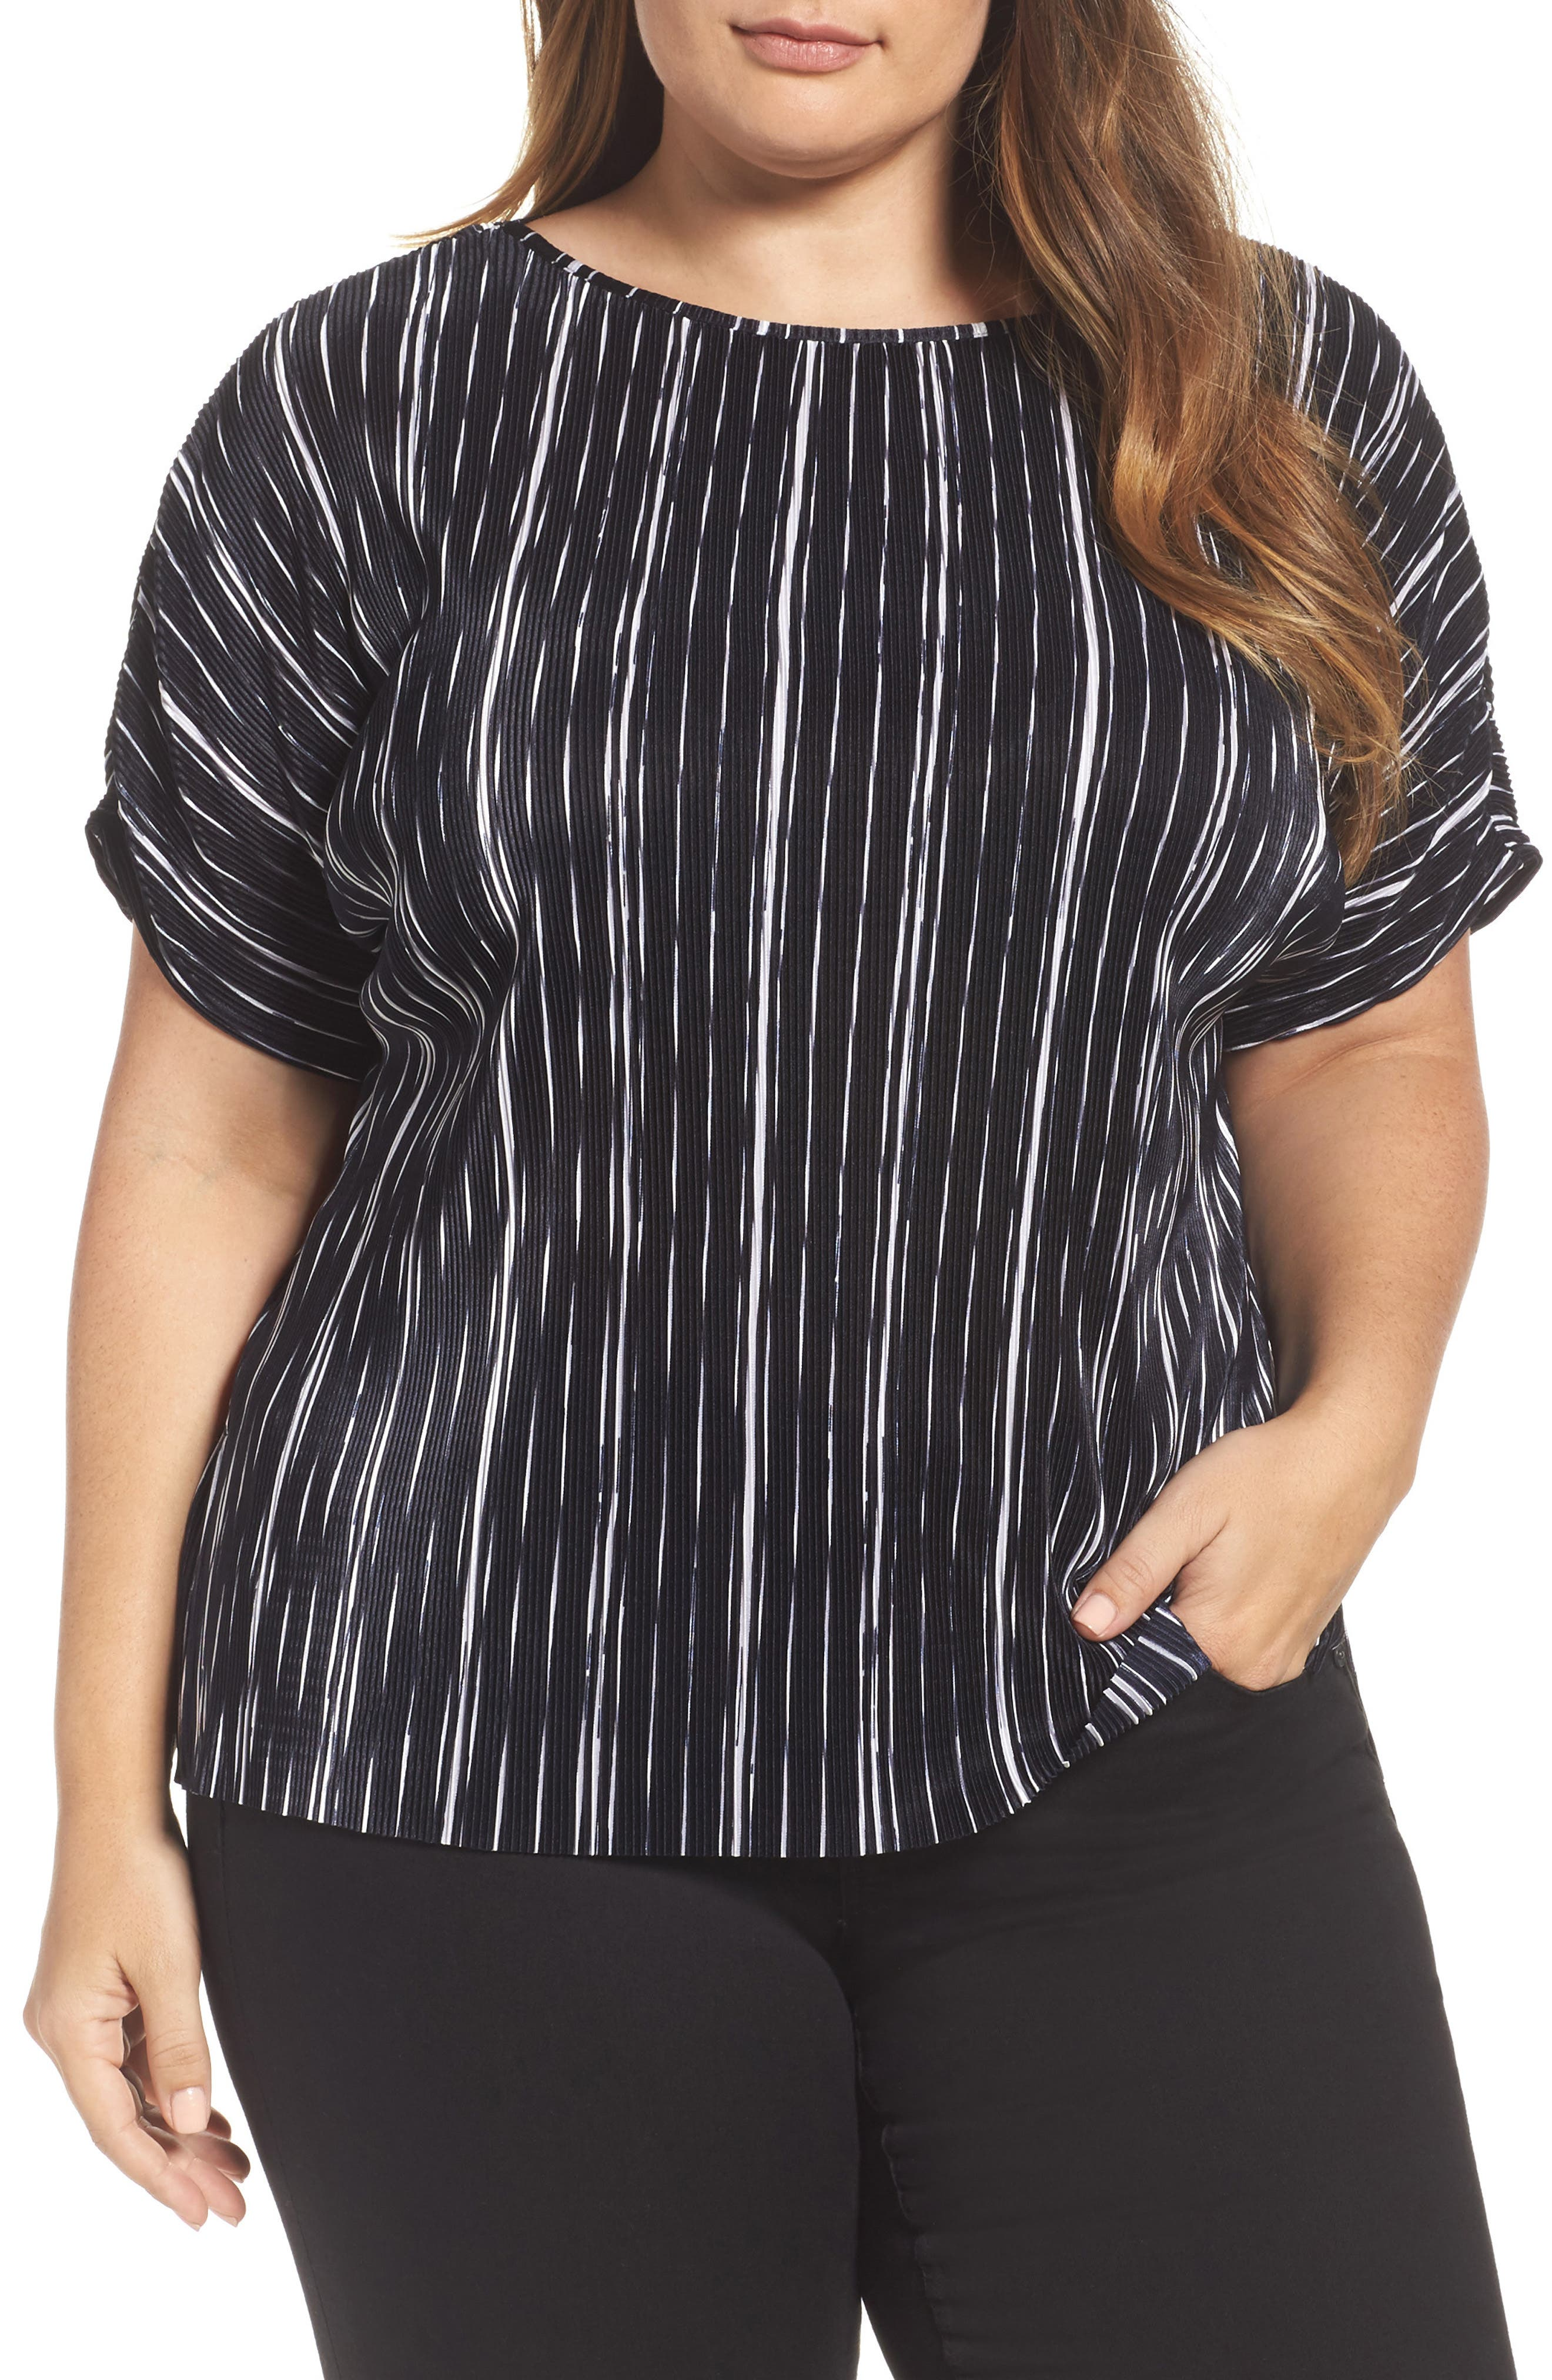 Vince Camuto Bodre Dolman Sleeve Top (Plus Size)